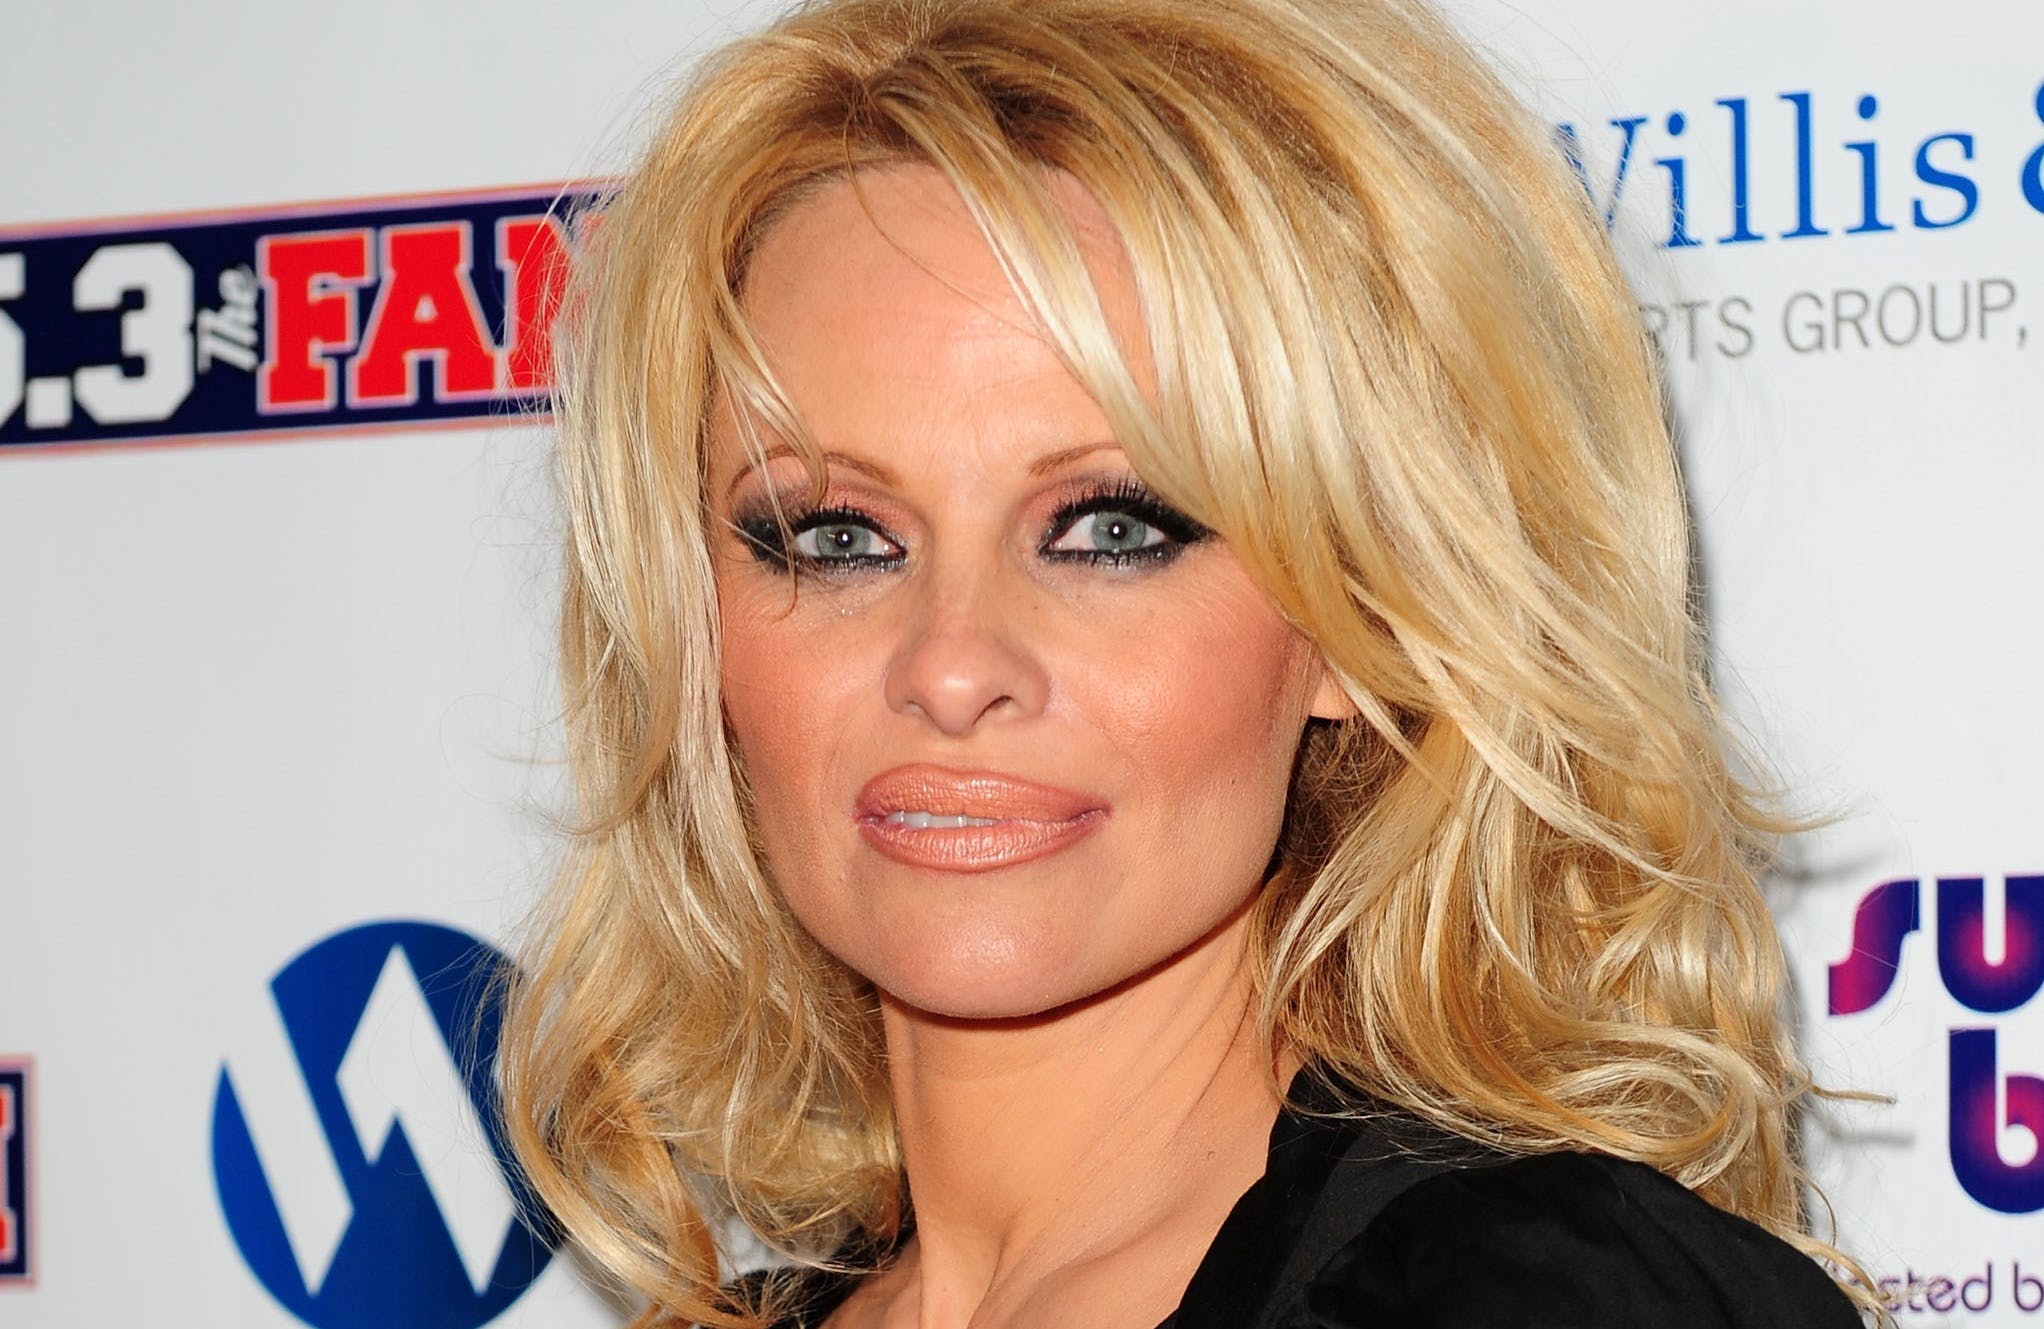 Pamela Anderson Before And After Plastic Surgery Images photo - 1